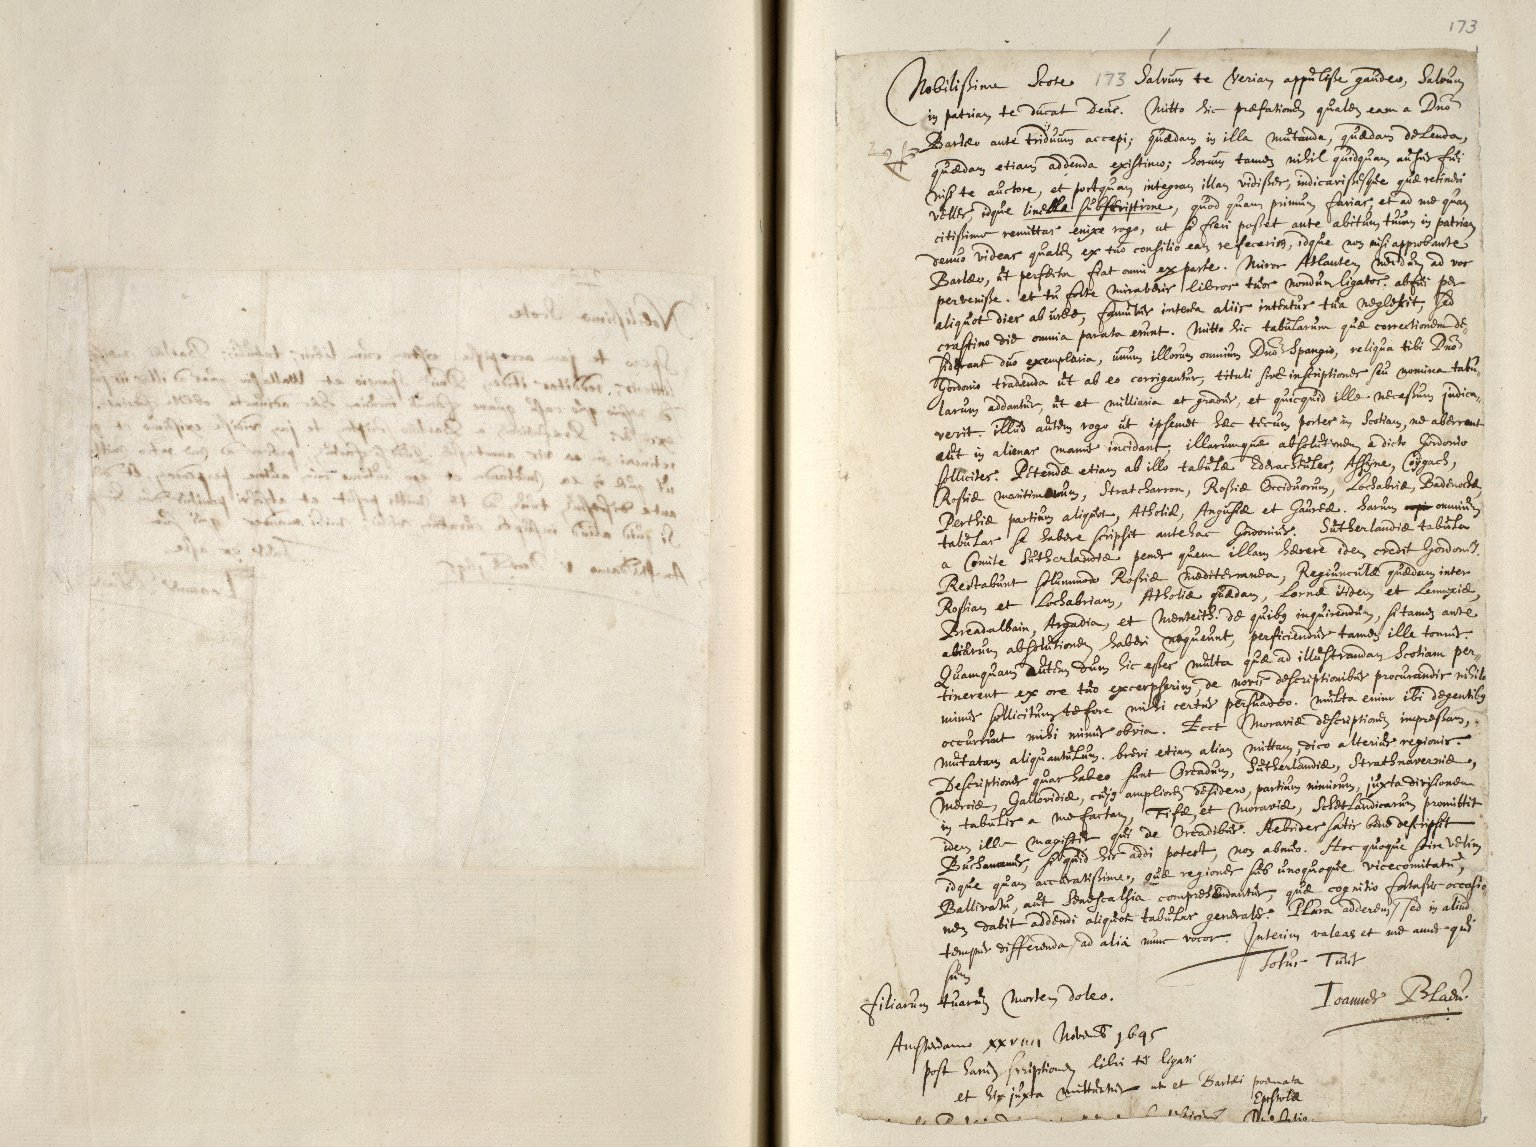 [A collection of ALS to Sir John Scot, Lord Scotstarvet, from W.J. and Joan Blaeu, Amsterdam] [12 of 27]